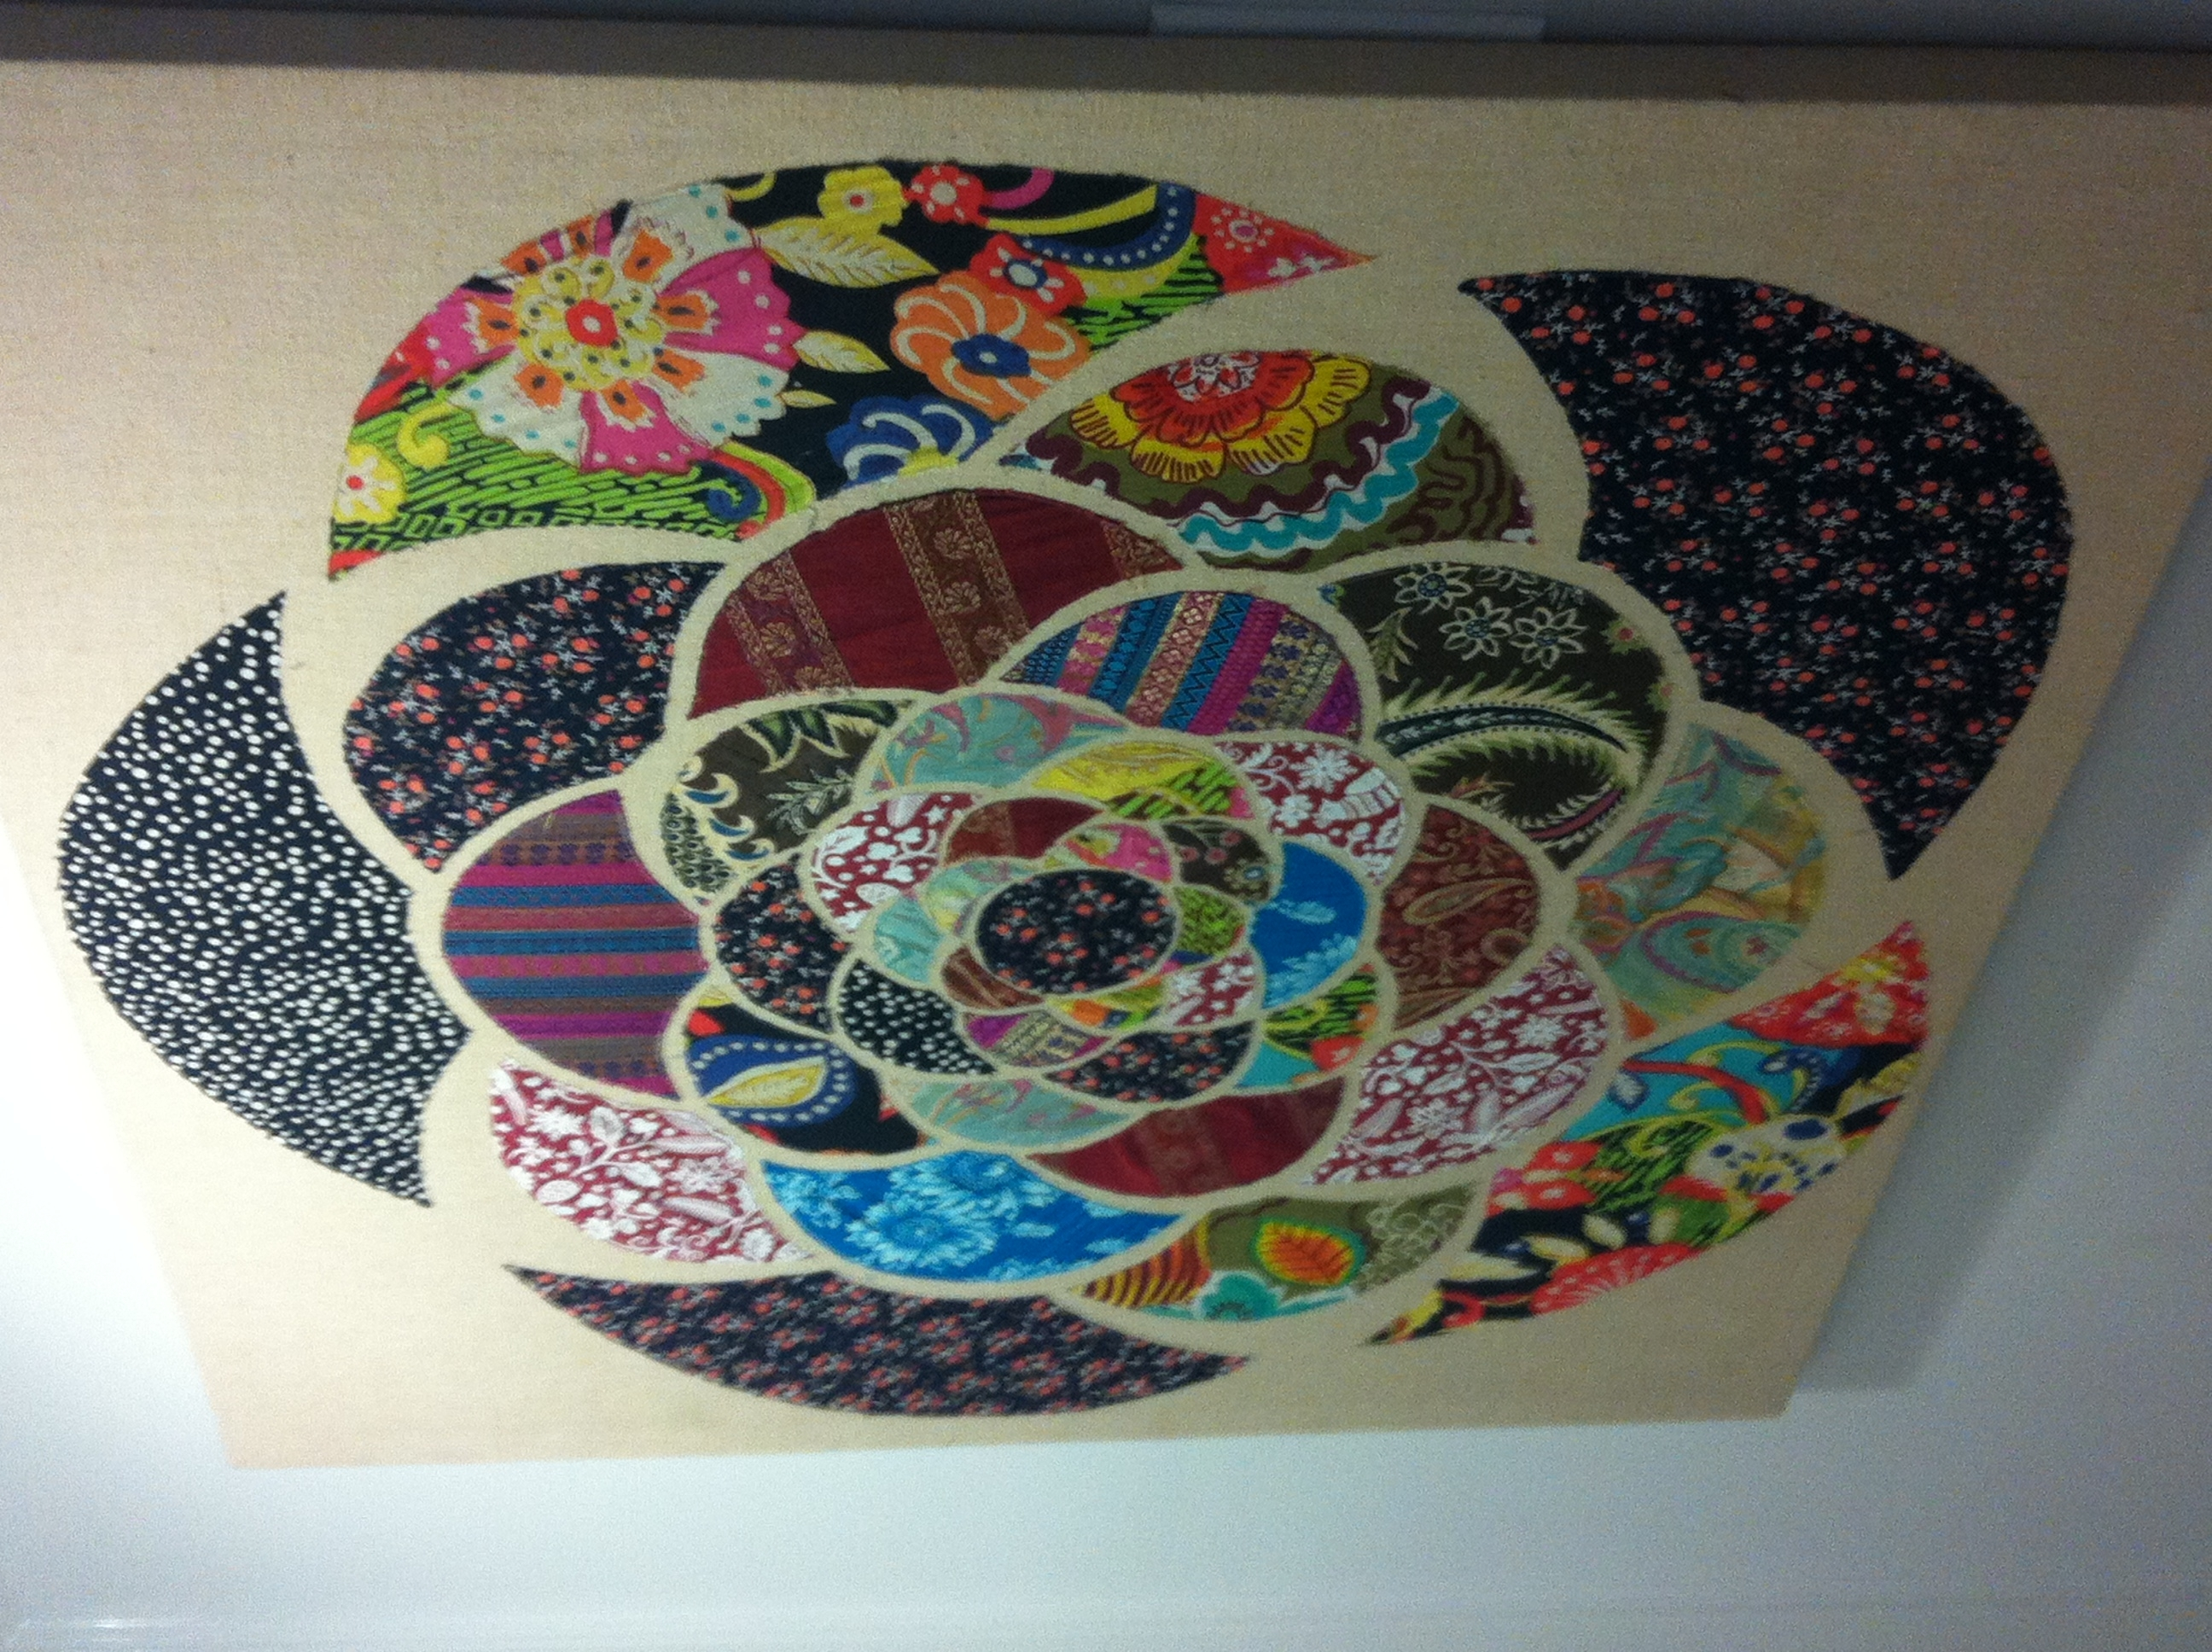 Use Scraps Of Fabric To Make A Large Wall Art On Canvas. | Diy within Most Up-to-Date Fabric Circle Wall Art